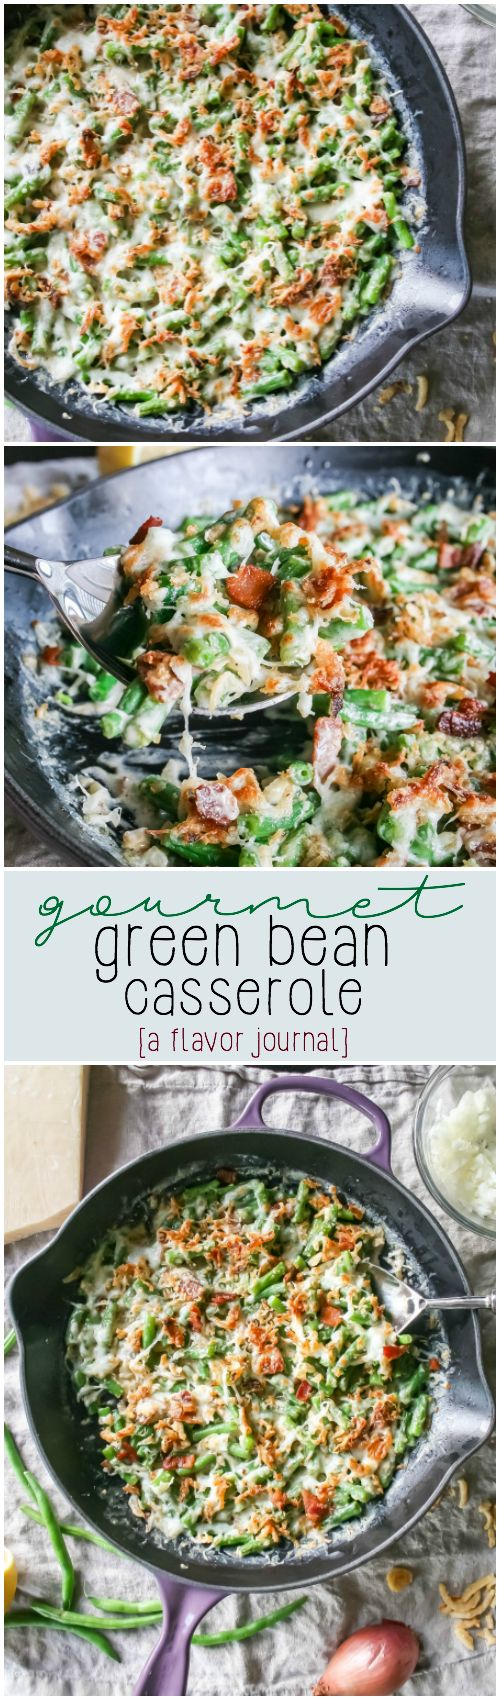 creamy, decadent green bean casserole gives a gourmet twist to the classic favorite.  with bacon, shallots, and cream sauce - it's a new holiday favorite for us!  gourmet green bean casserole. http://aflavorjournal.com/gourmet-green-bean-casserole/